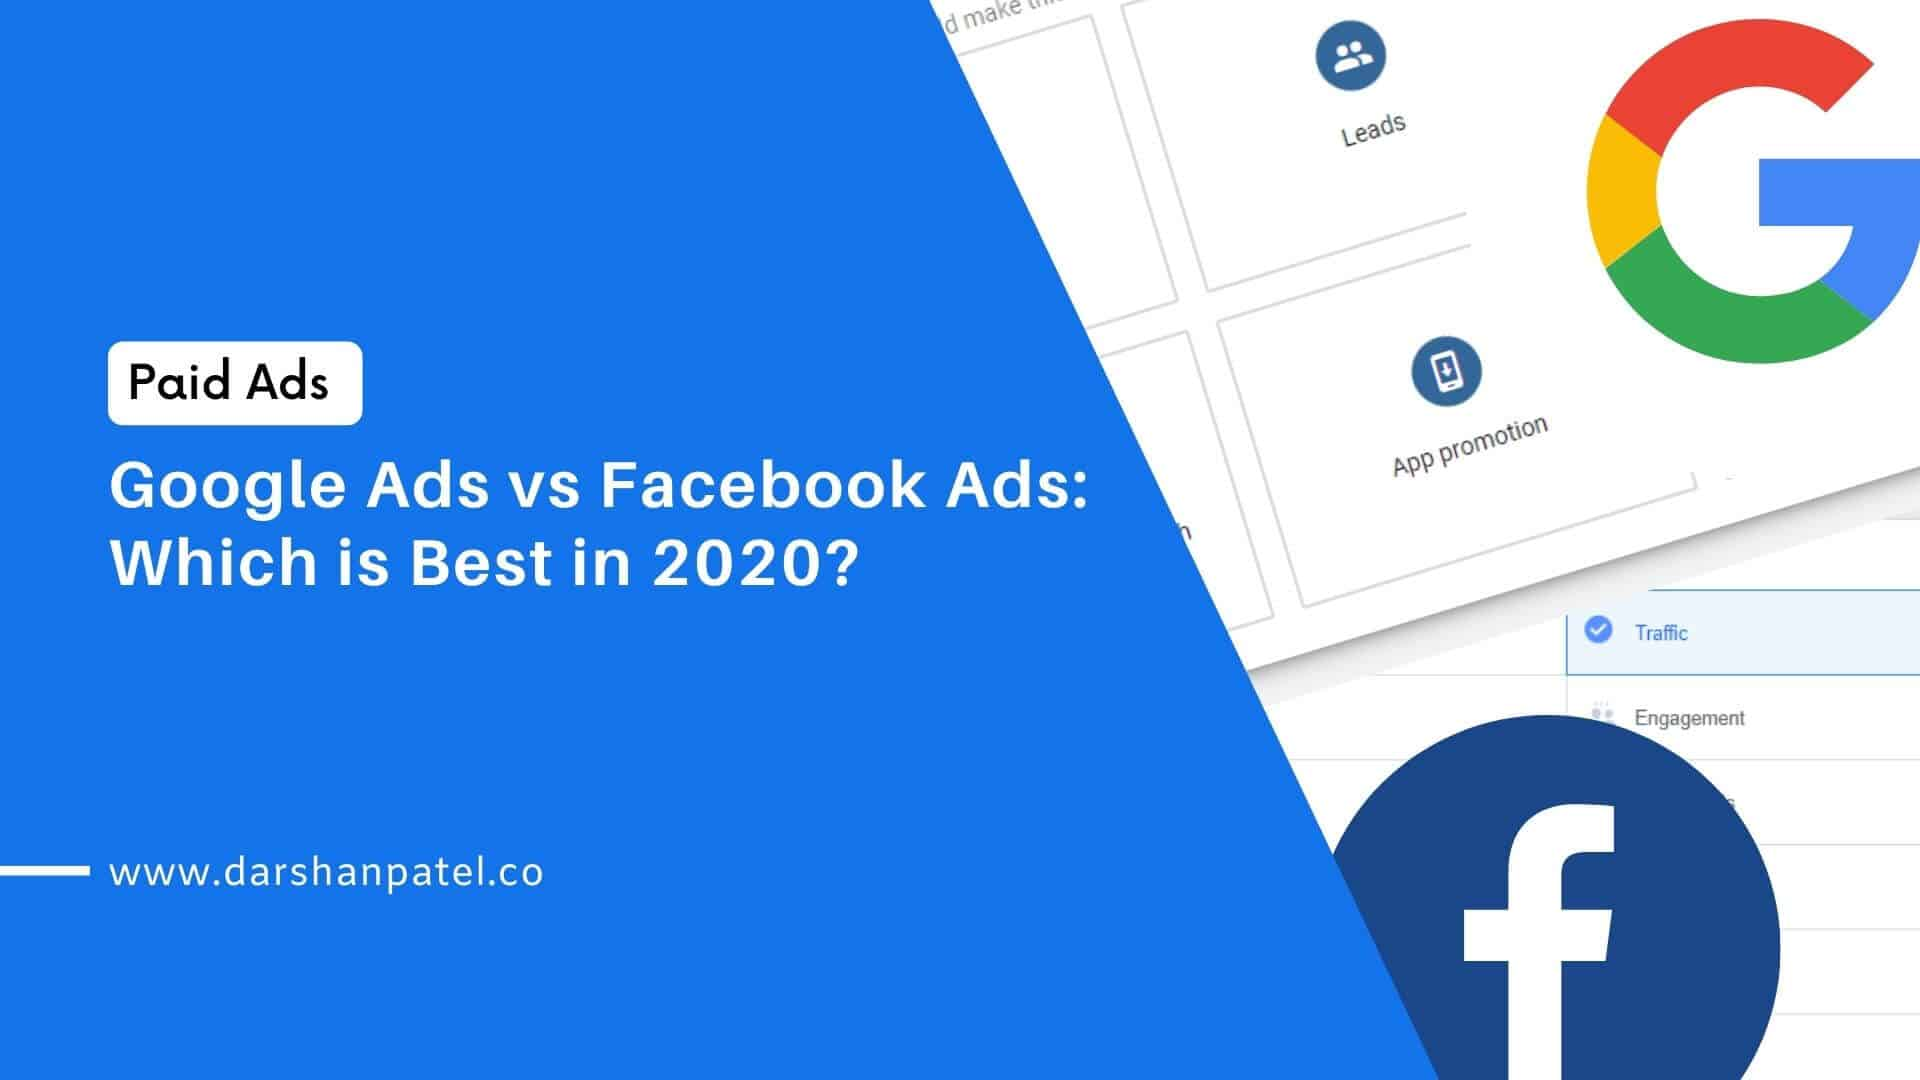 Google Ads vs Facebook Ads Which is Best in 2020